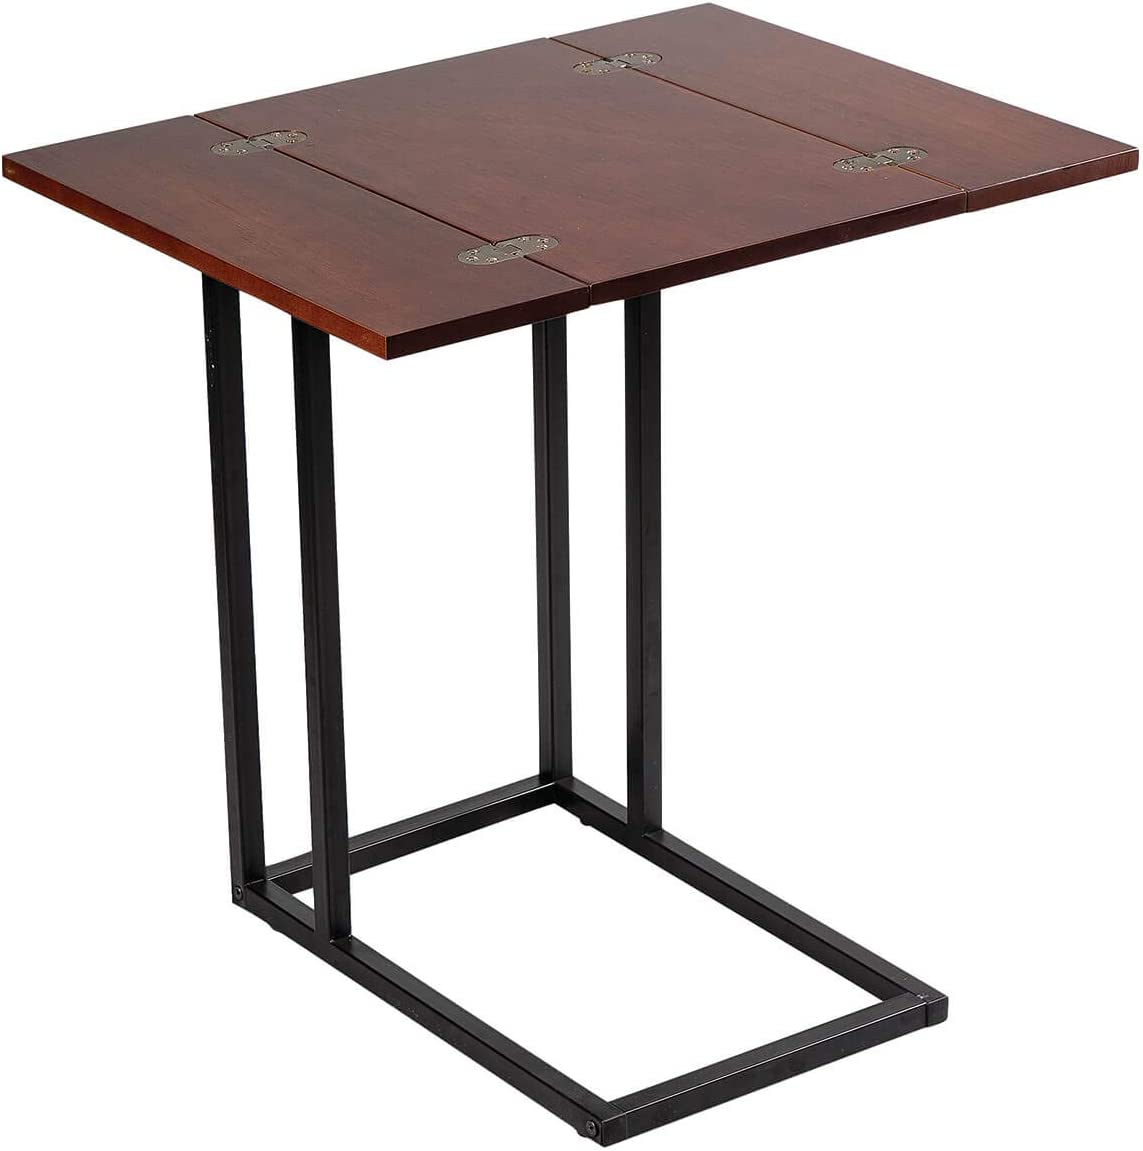 OakRidge Side Accent Table with Fold Out Top, Slim End Table